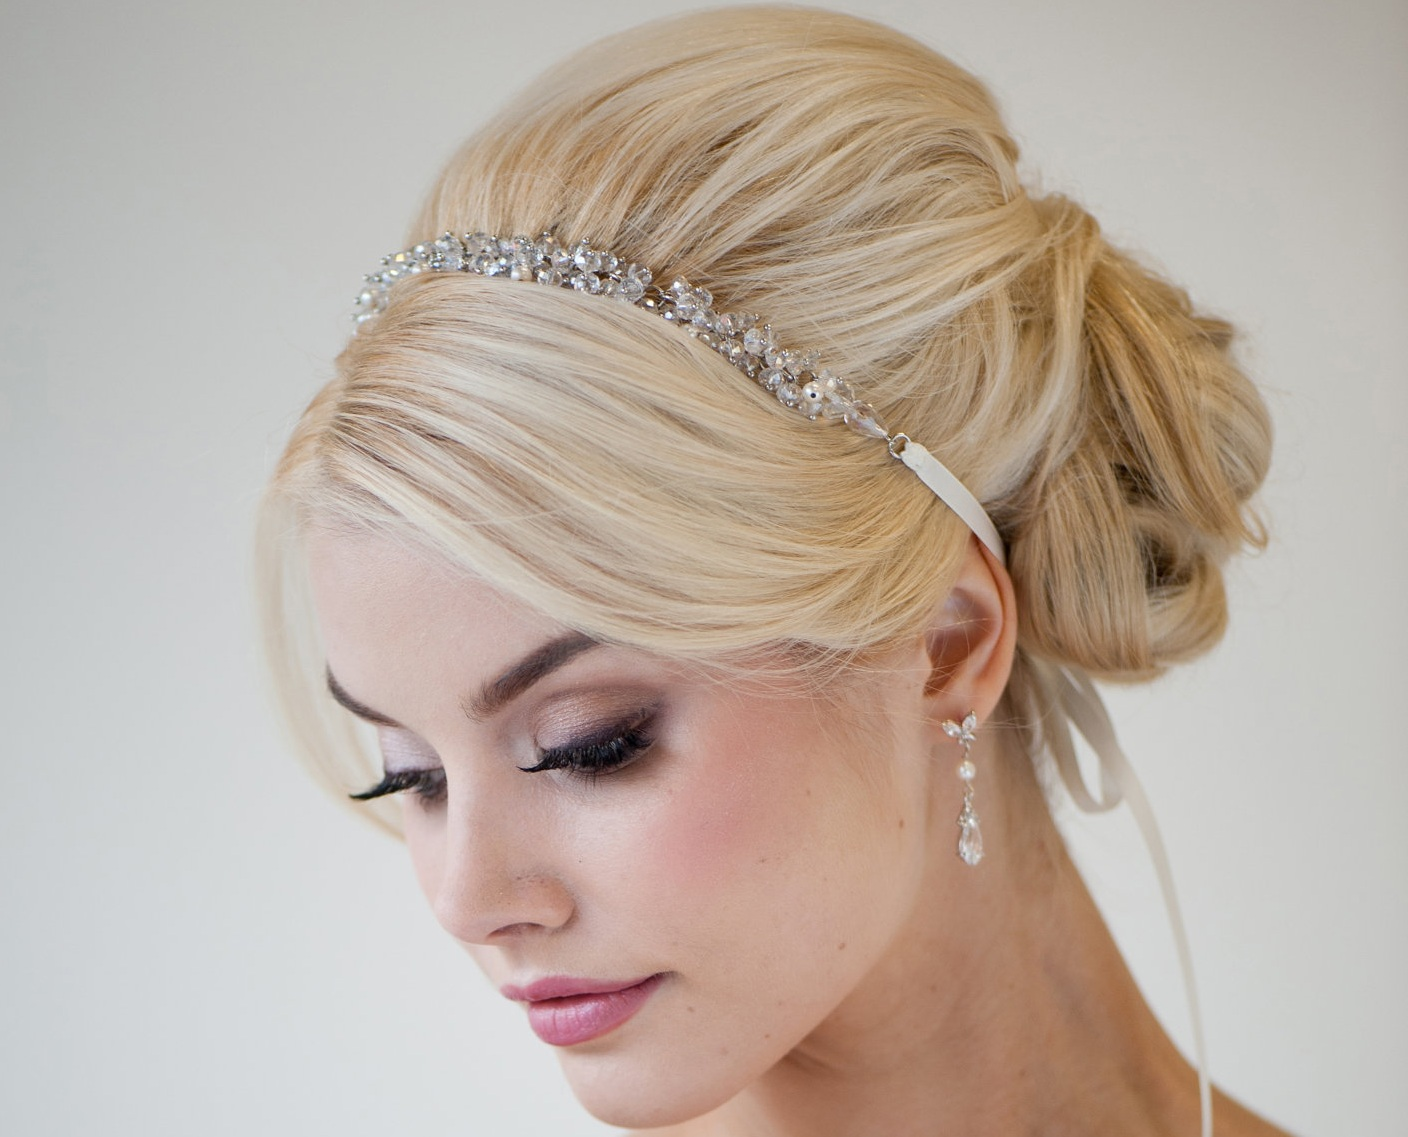 Astonishing Exquisite Wedding Hairstyles For Brides Amp Bridesmaids Hairstylo Short Hairstyles For Black Women Fulllsitofus